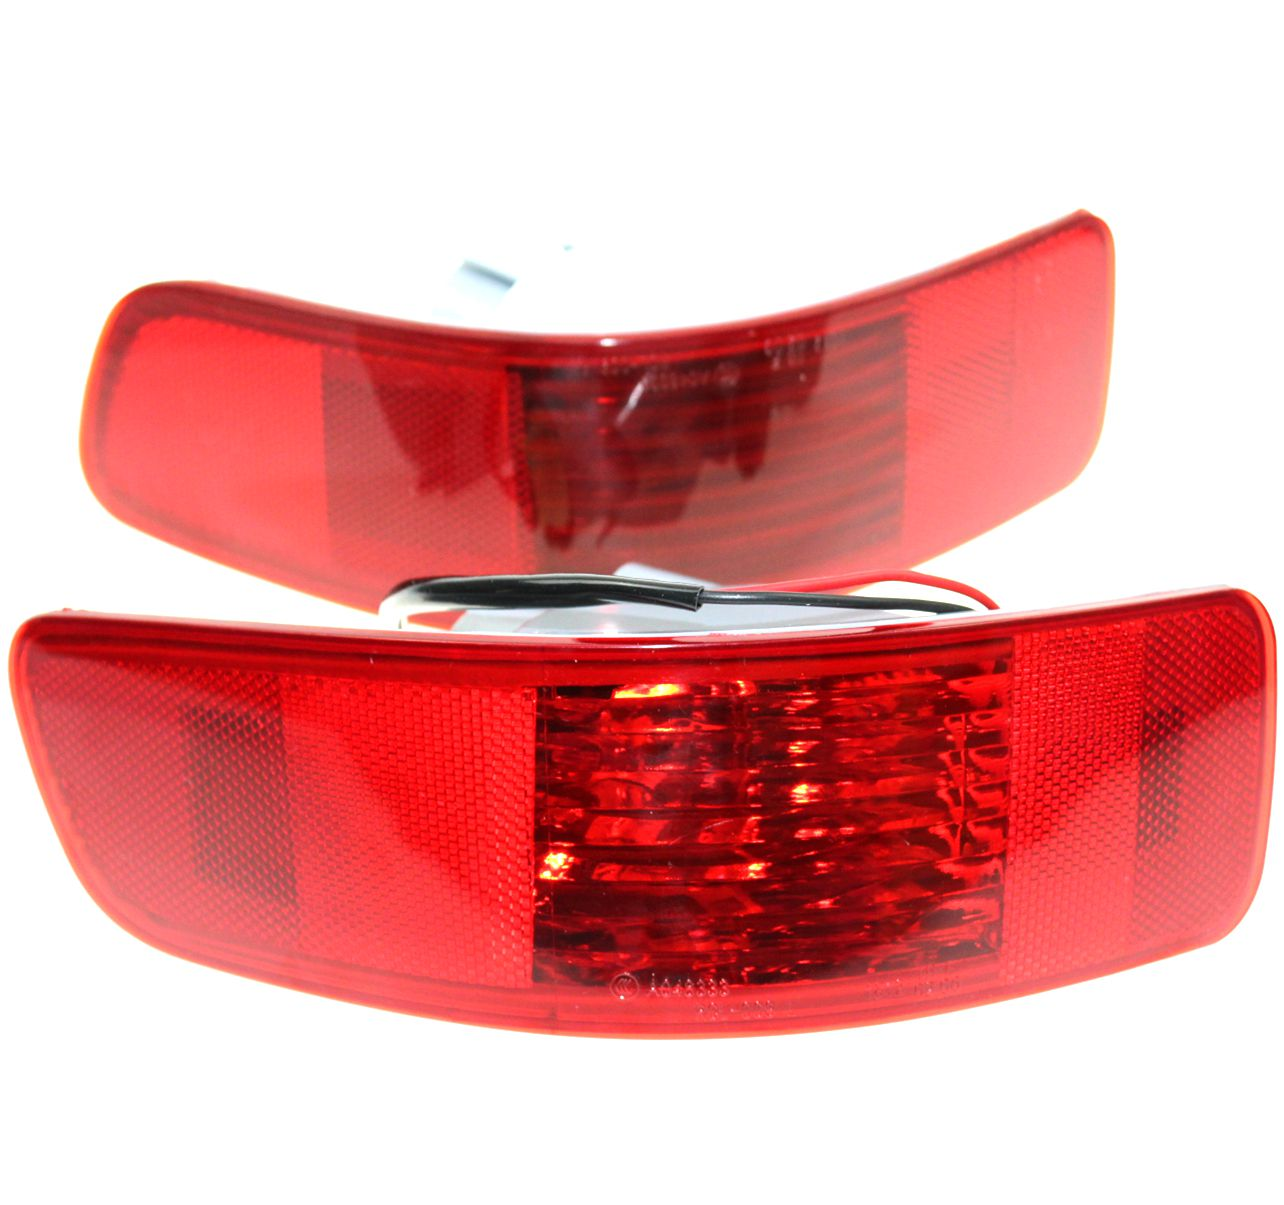 LARBLL Pair Rear Bumper Right Left Tail Fog Light Lamp Fit for Mitsubishi Outlander PEUGEOT 4007 2007-2012 CITROEN C-Crosser 1 pc rh without bulb tail bumper fog light rear fog lamp right for mitsubishi outlander 2013 2015